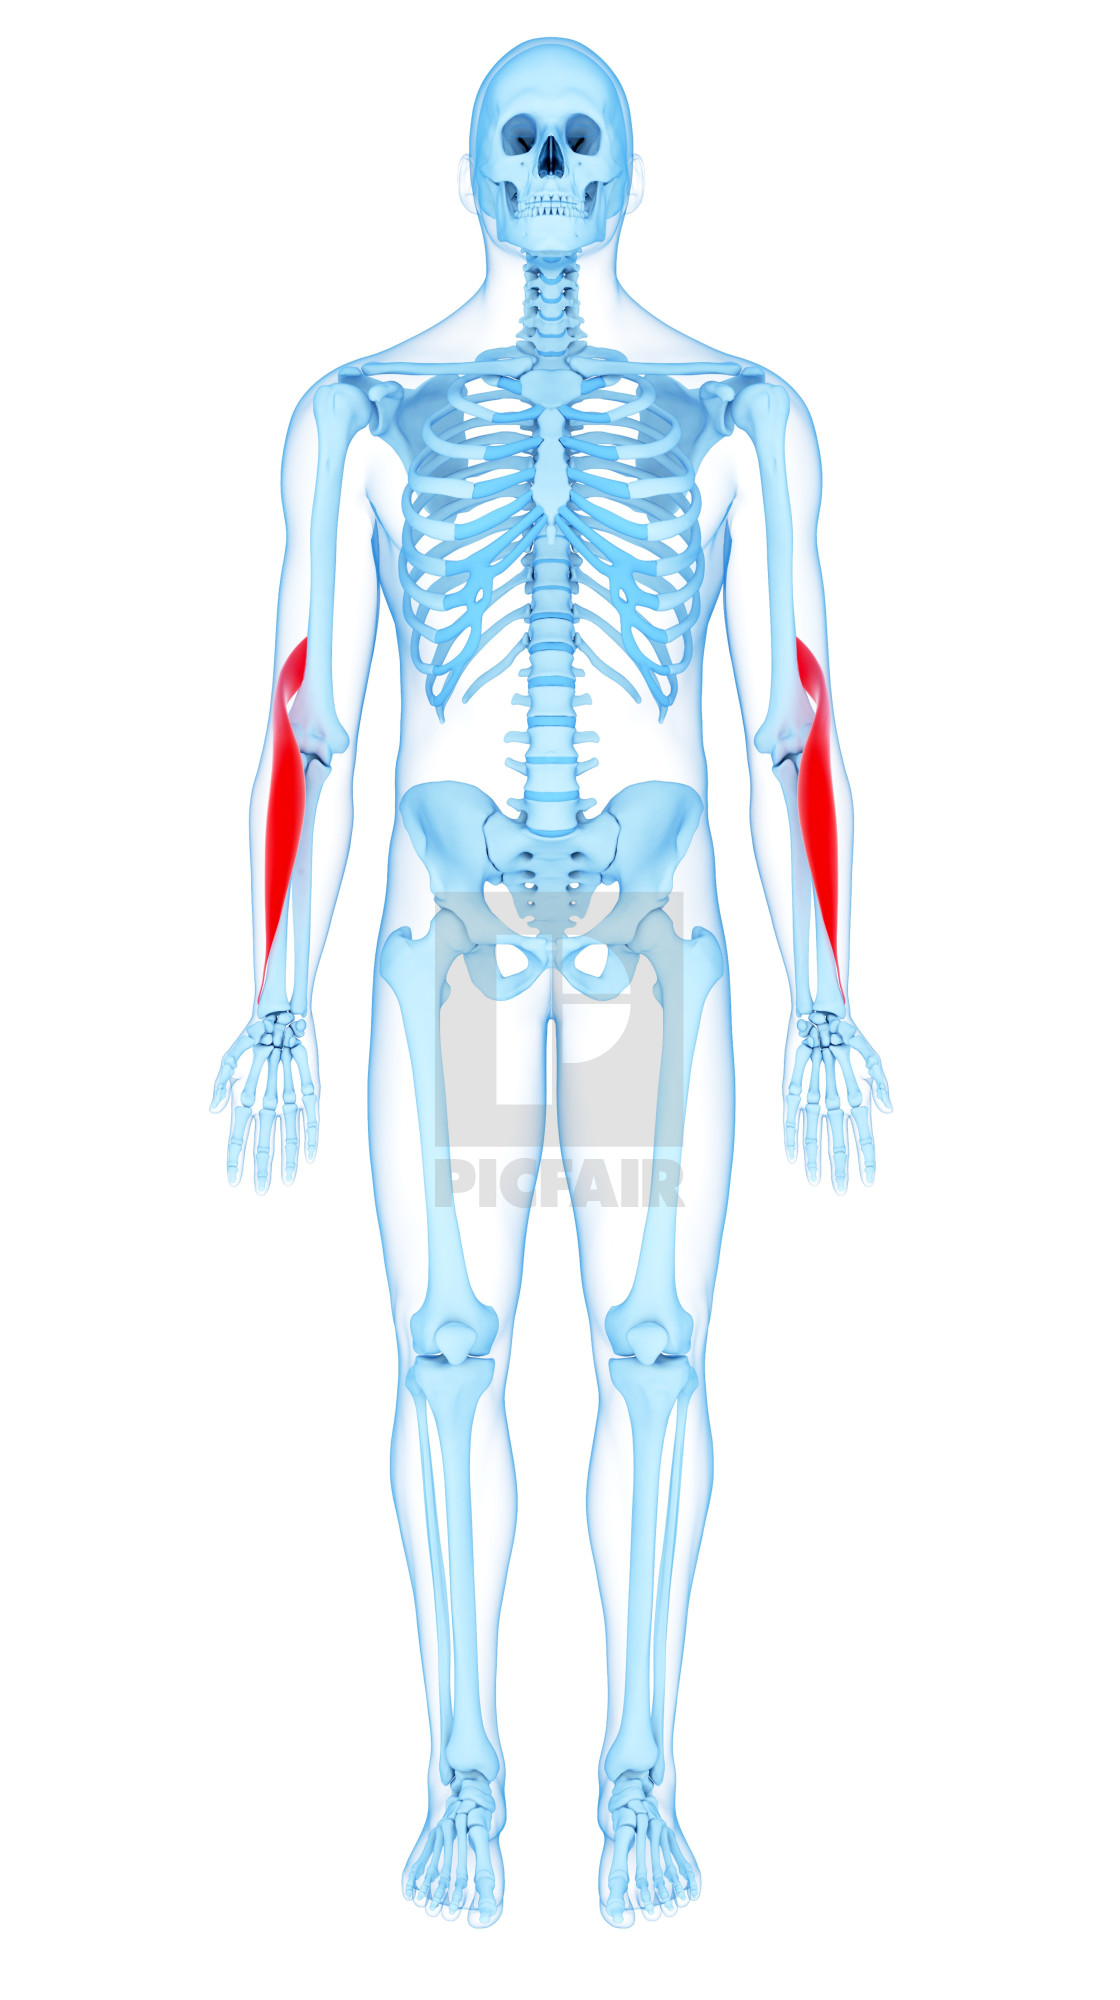 """""""Arm muscles, illustration"""" stock image"""